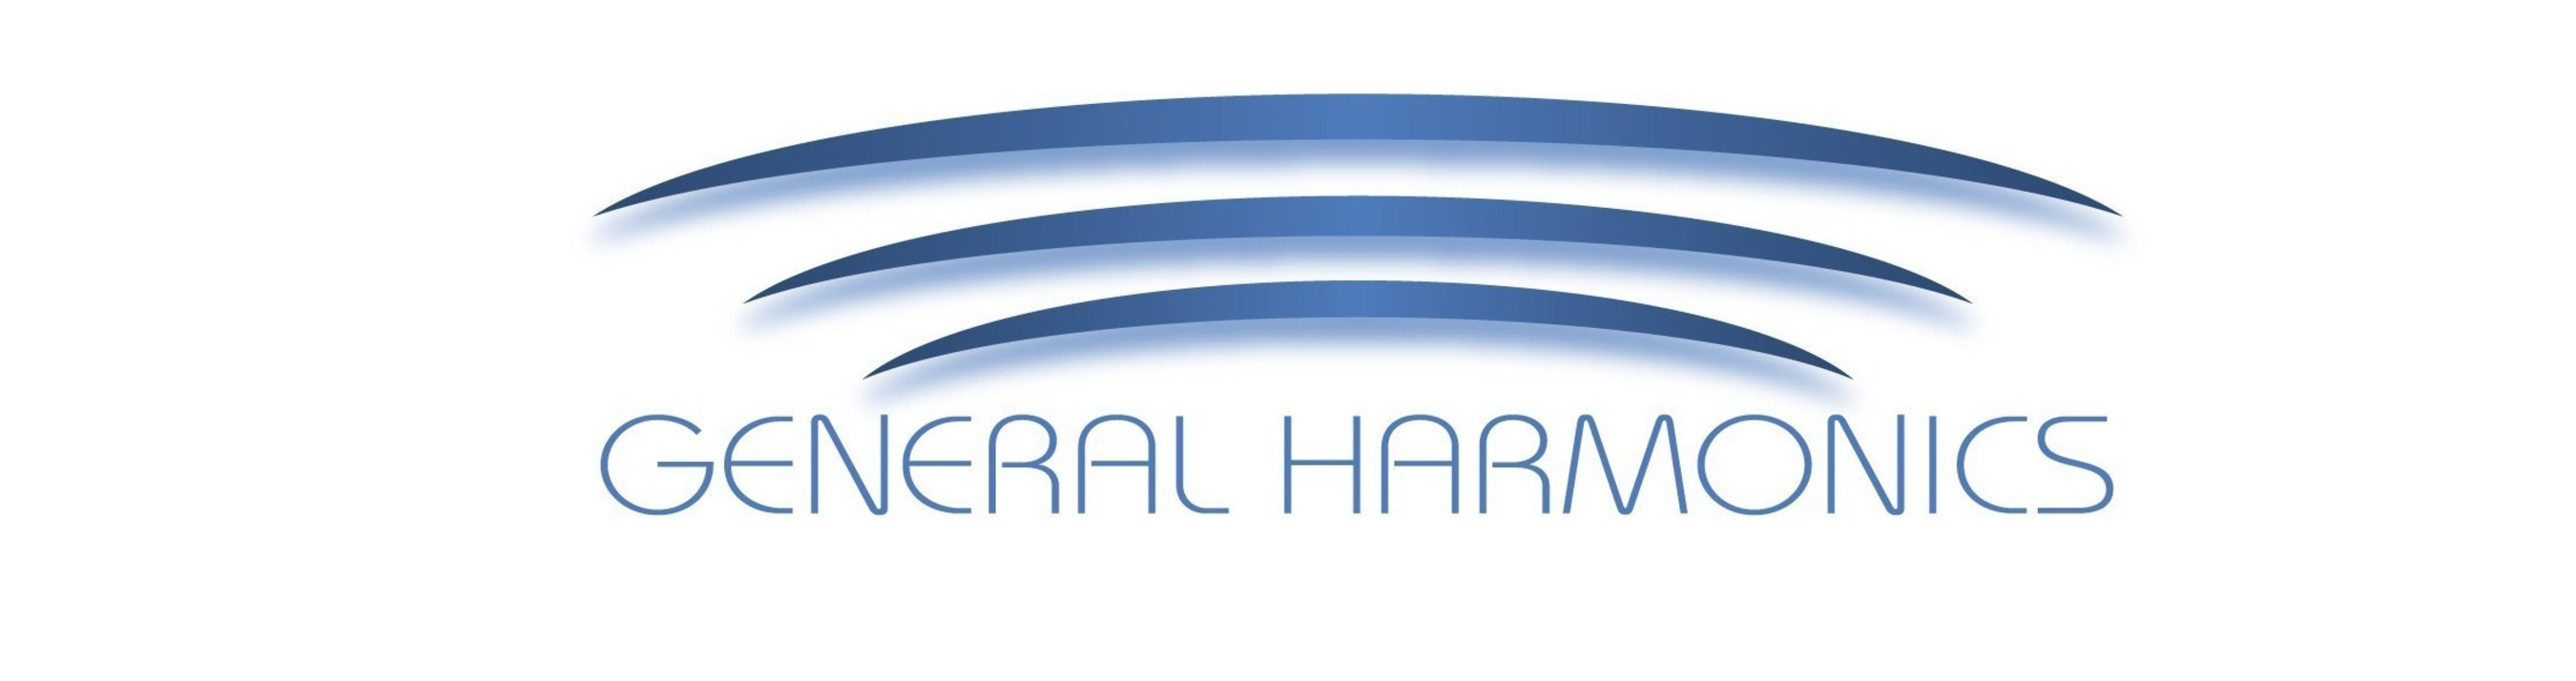 General Harmonics International Inc. and AITP Europe AS enter into a Strategic Relationship and